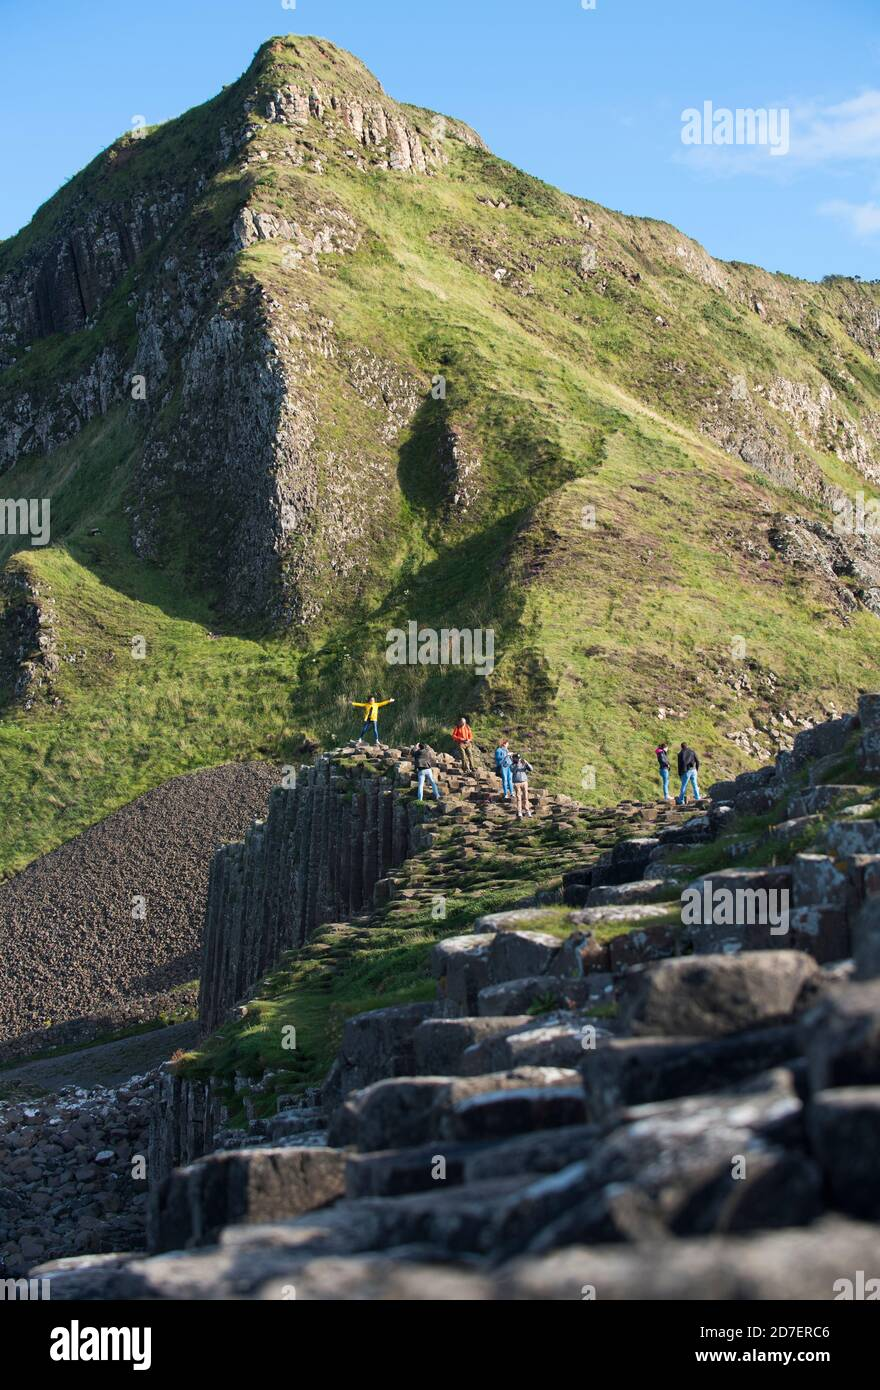 Giant's Causeway, a UNESCO world heritage site consisting of some 40,000 basalt columns located on the Antrim coast of Northern Ireland, U.K. Stock Photo